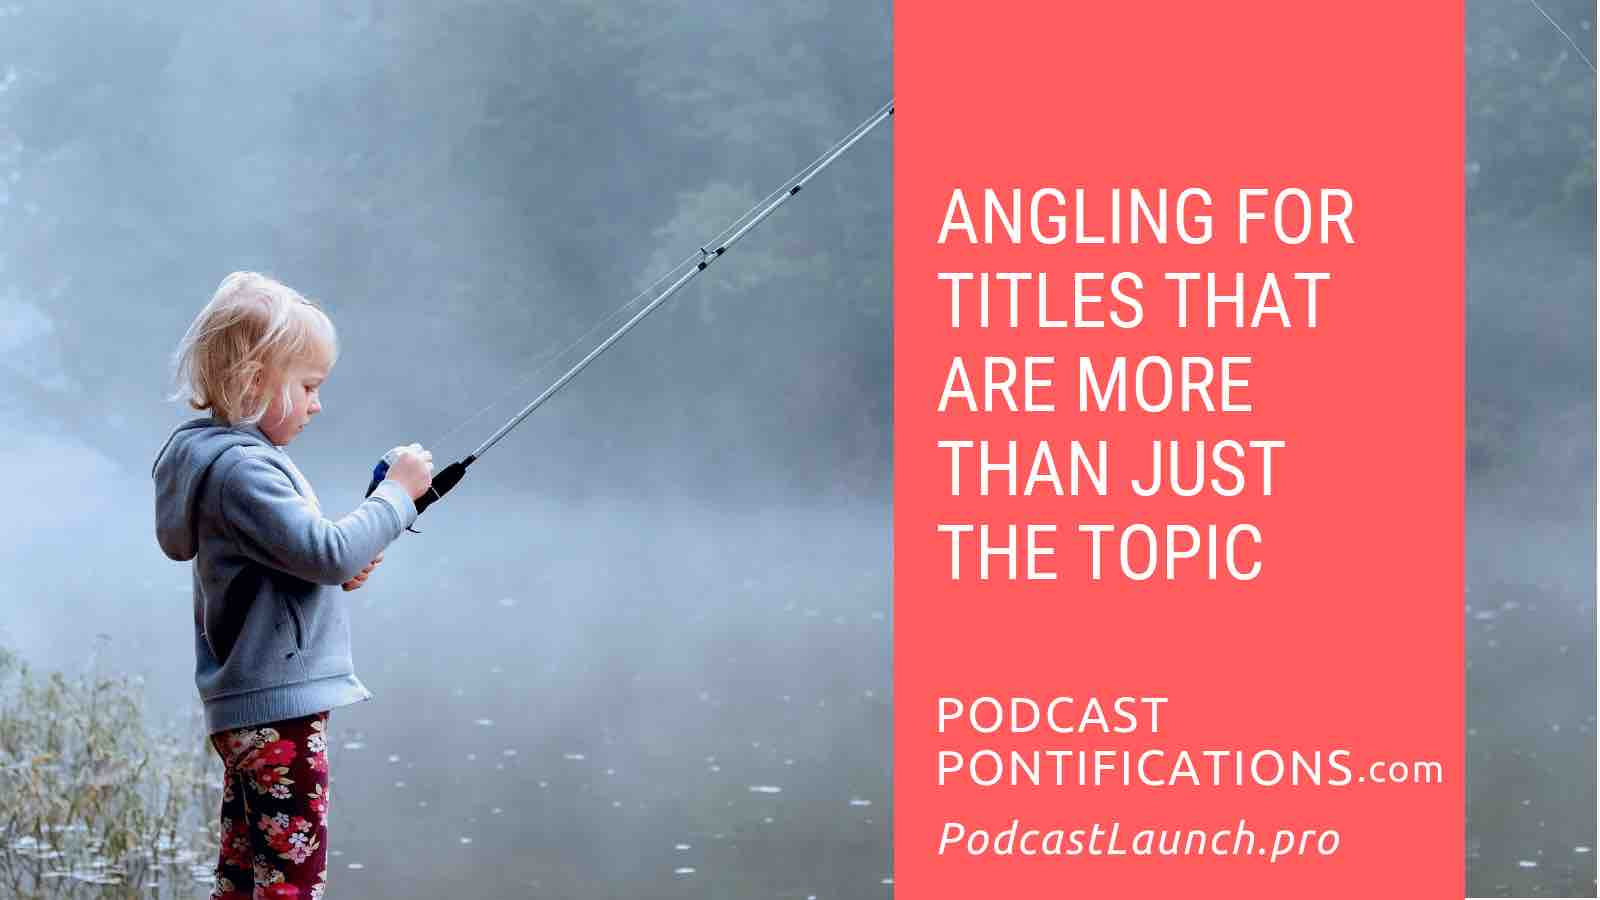 Angling for Titles That Are More Than Just The Topic